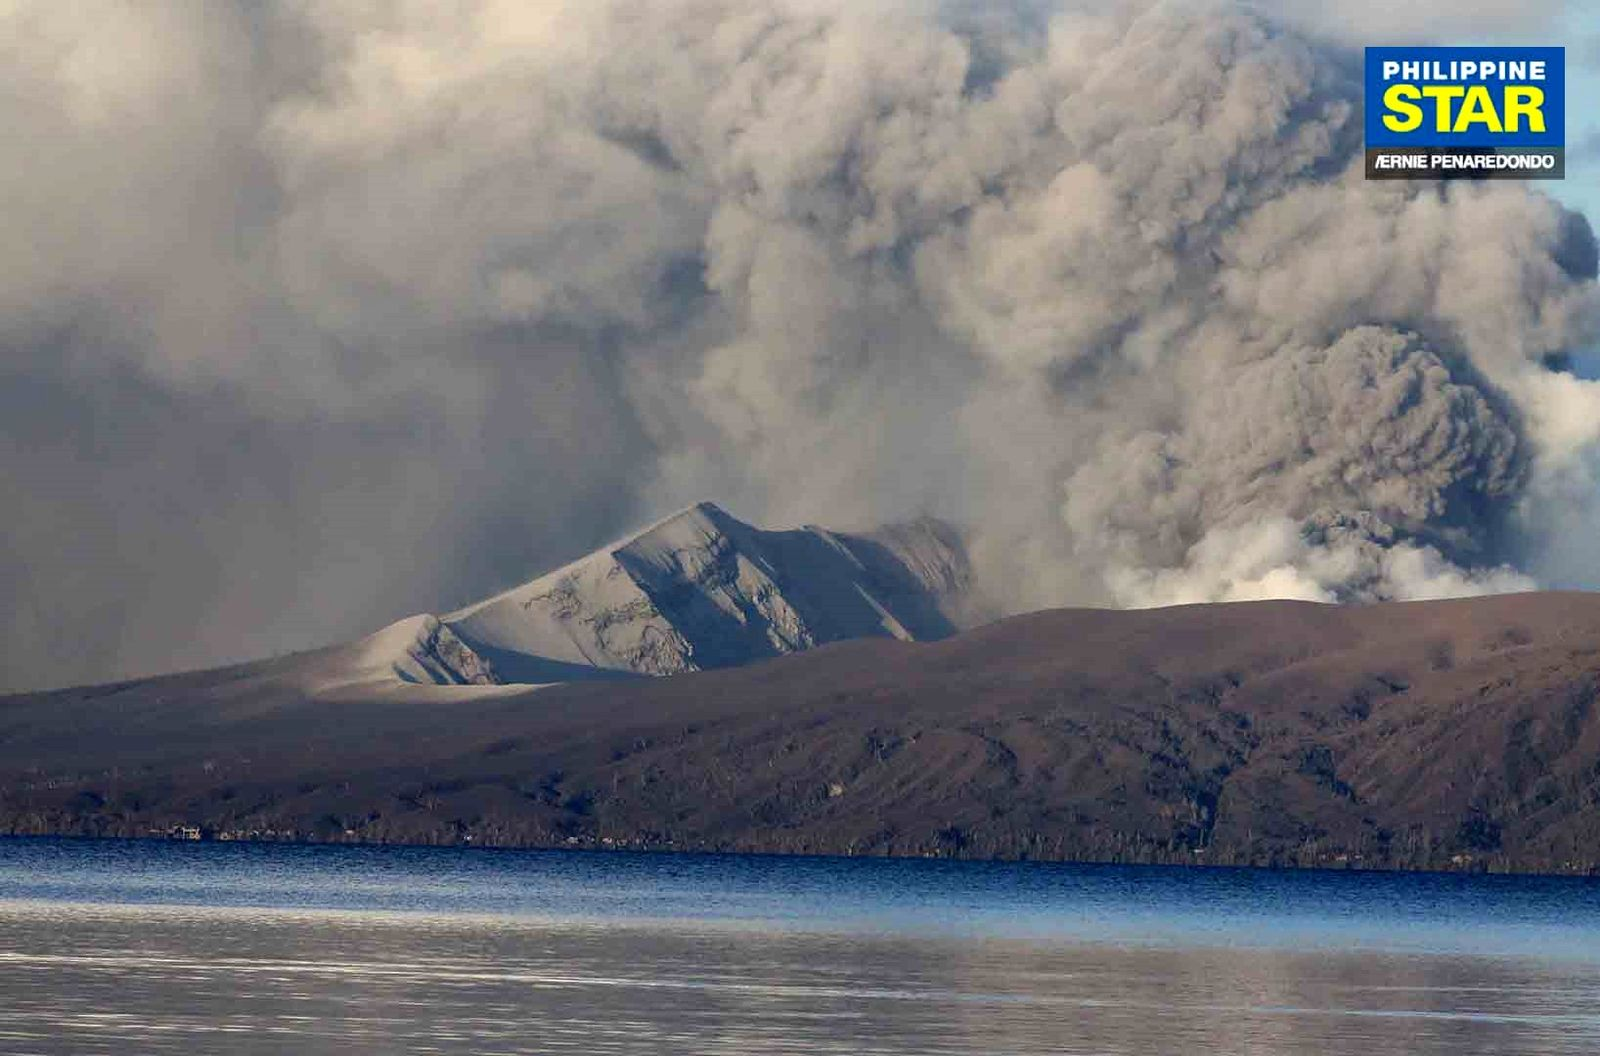 Taal - gray ash plume of  14.01.2020 - photo Ernie Peranedondo / Philippine Star